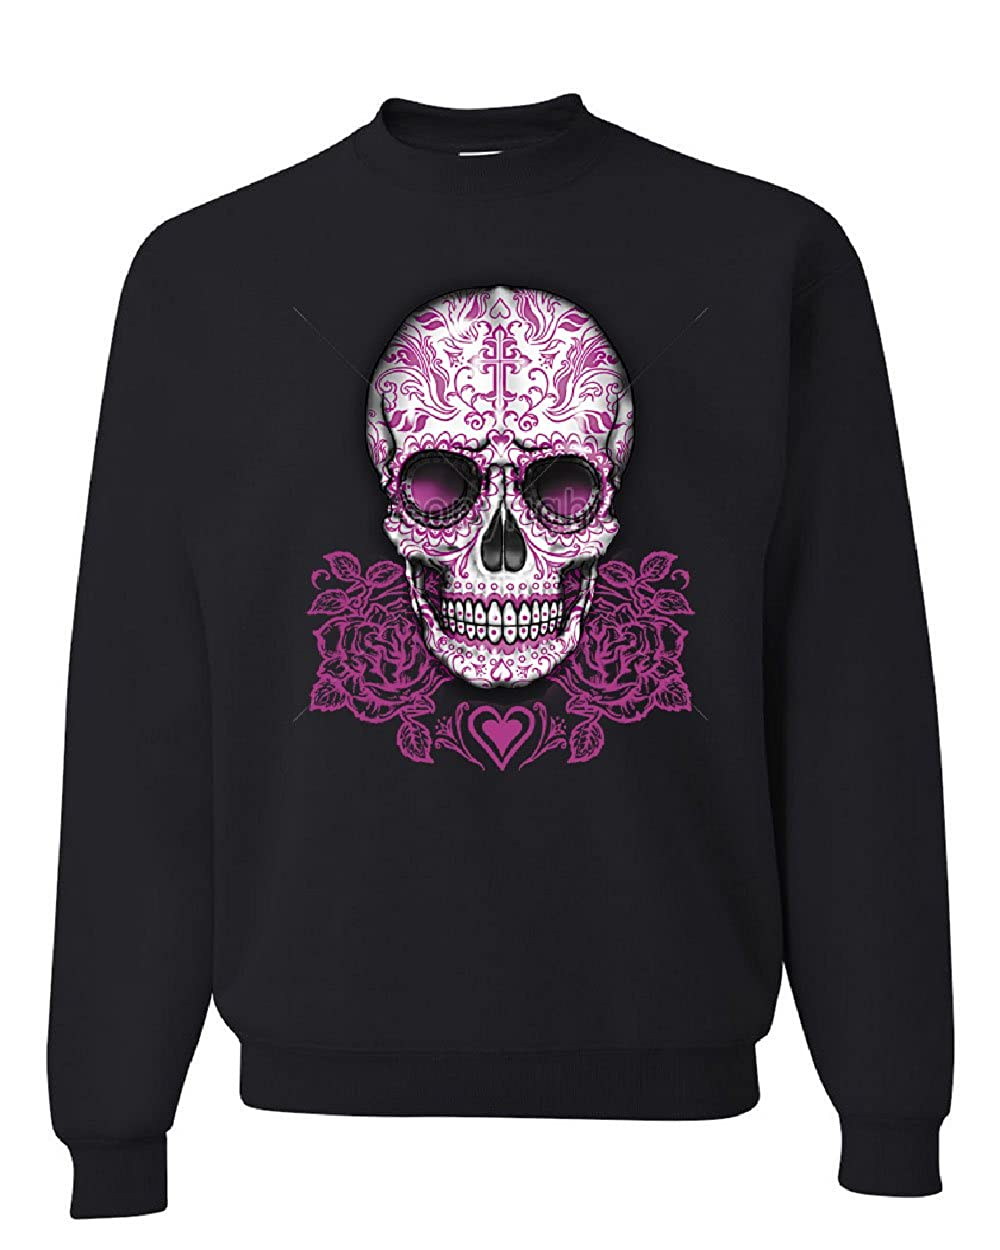 Pink Sugar Skull with Roses Sweatshirt Calavera Day of The Dead